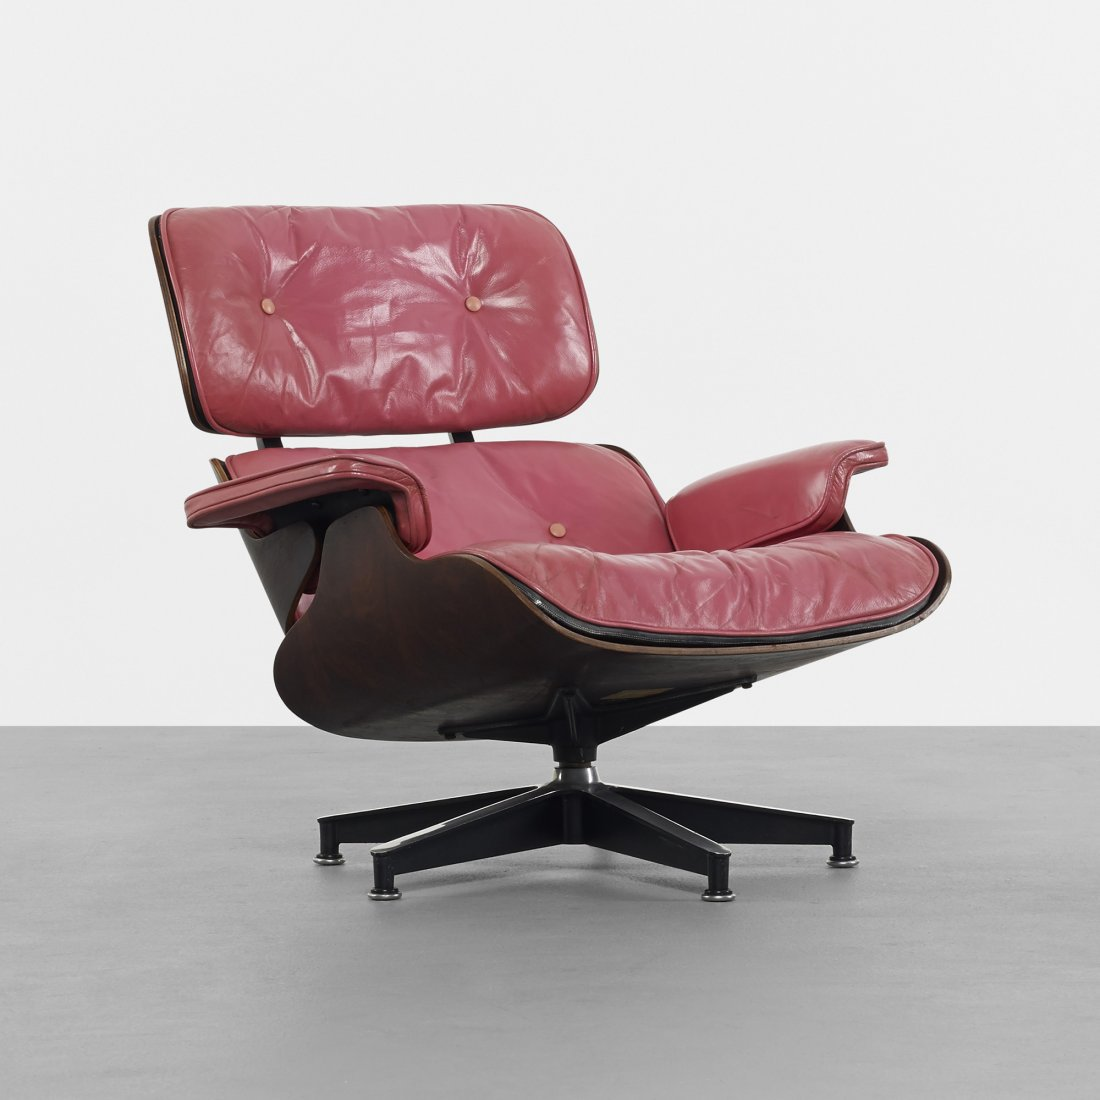 Rare Pink Leather Eames Herman MIller Recliner